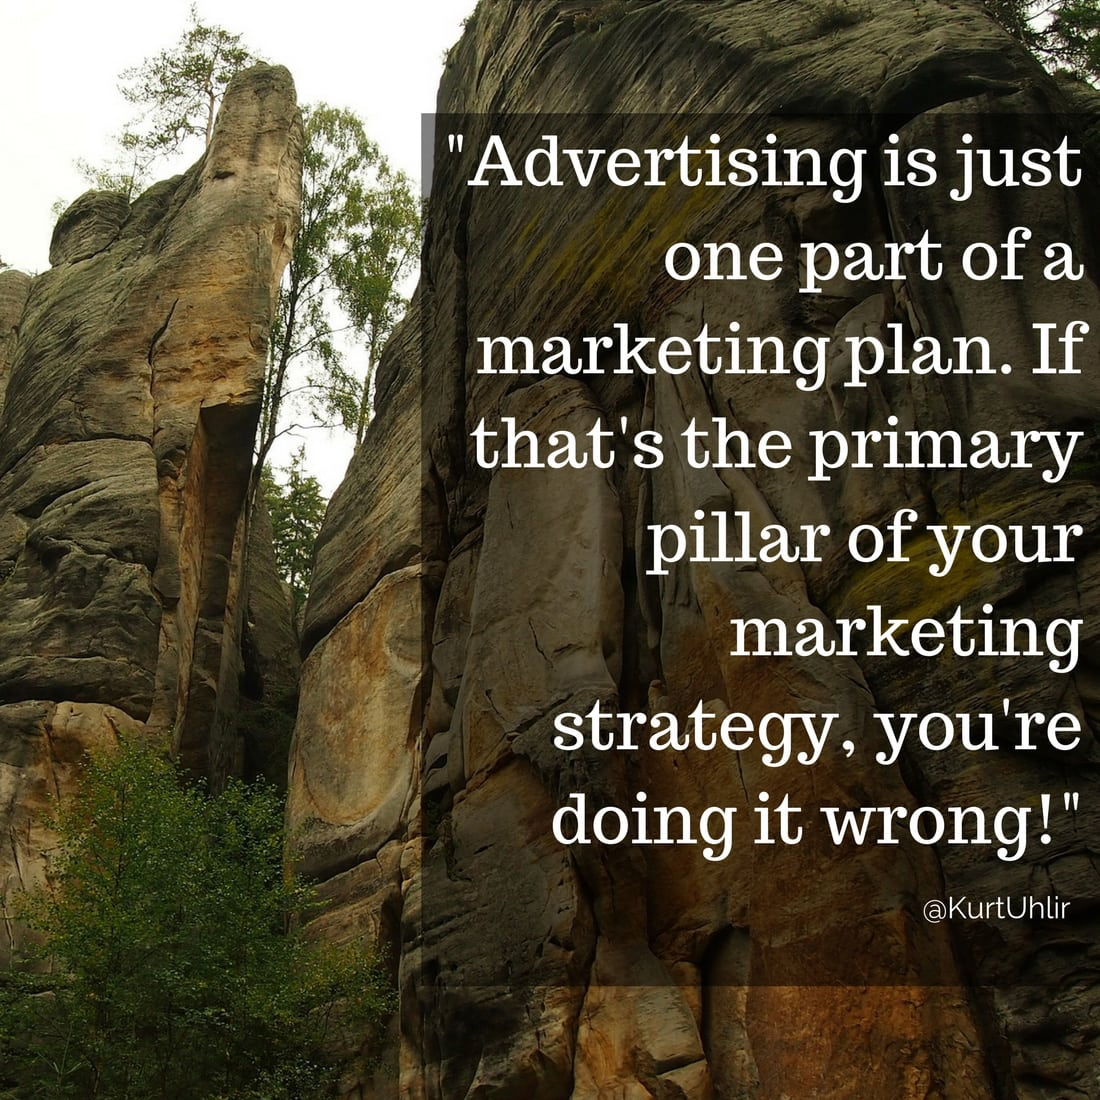 Advertising is just one part of a marketing plan. If that's the primary pillar of your marketing strategy, you're doing it wrong! - Kurt Uhlir marketing quote